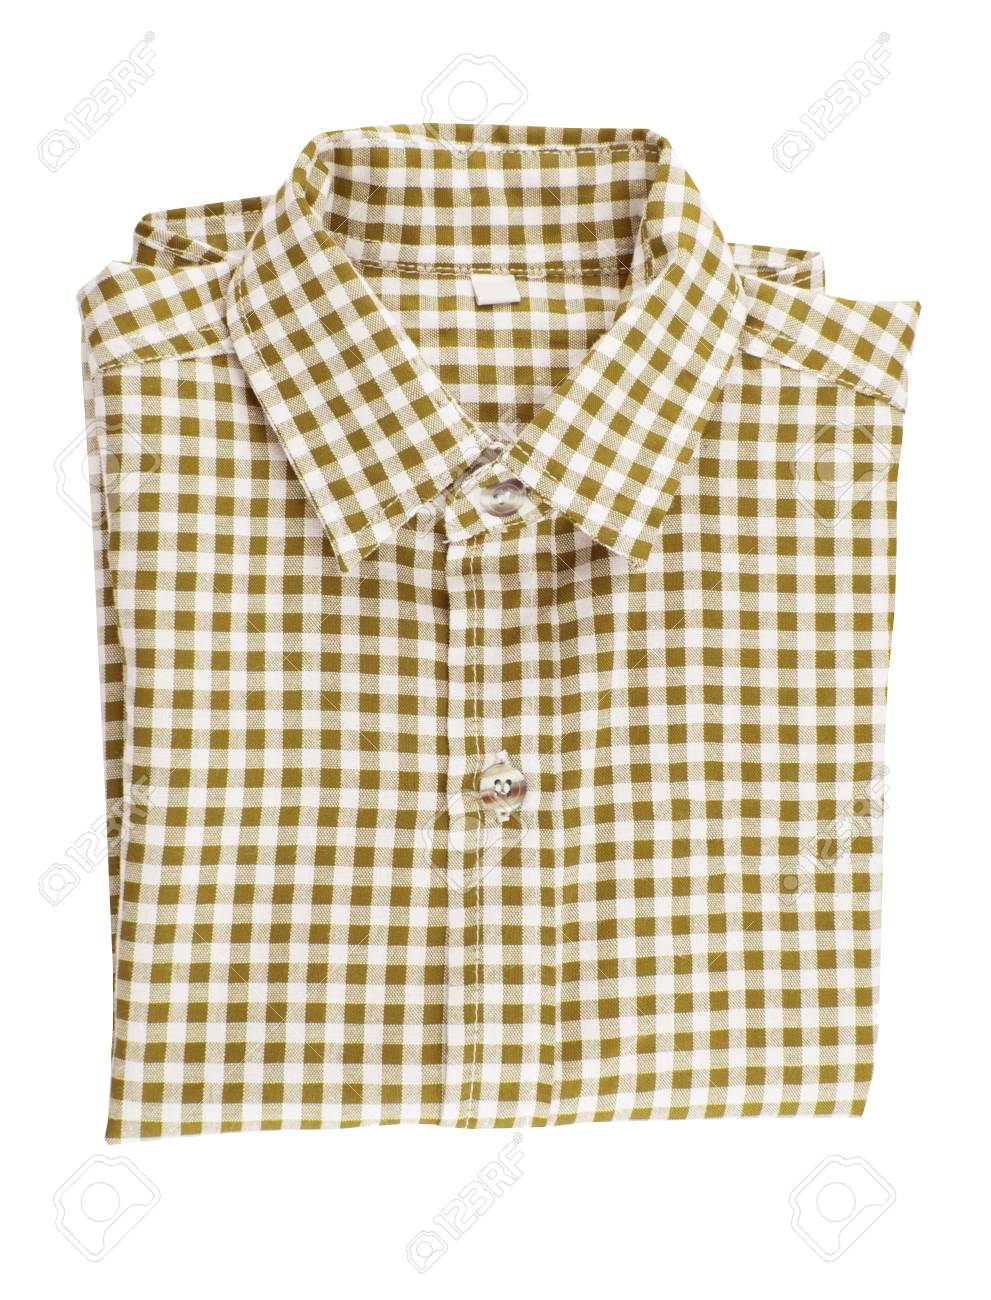 53e2392a78b Brown checkered shirt folded isolated on white background